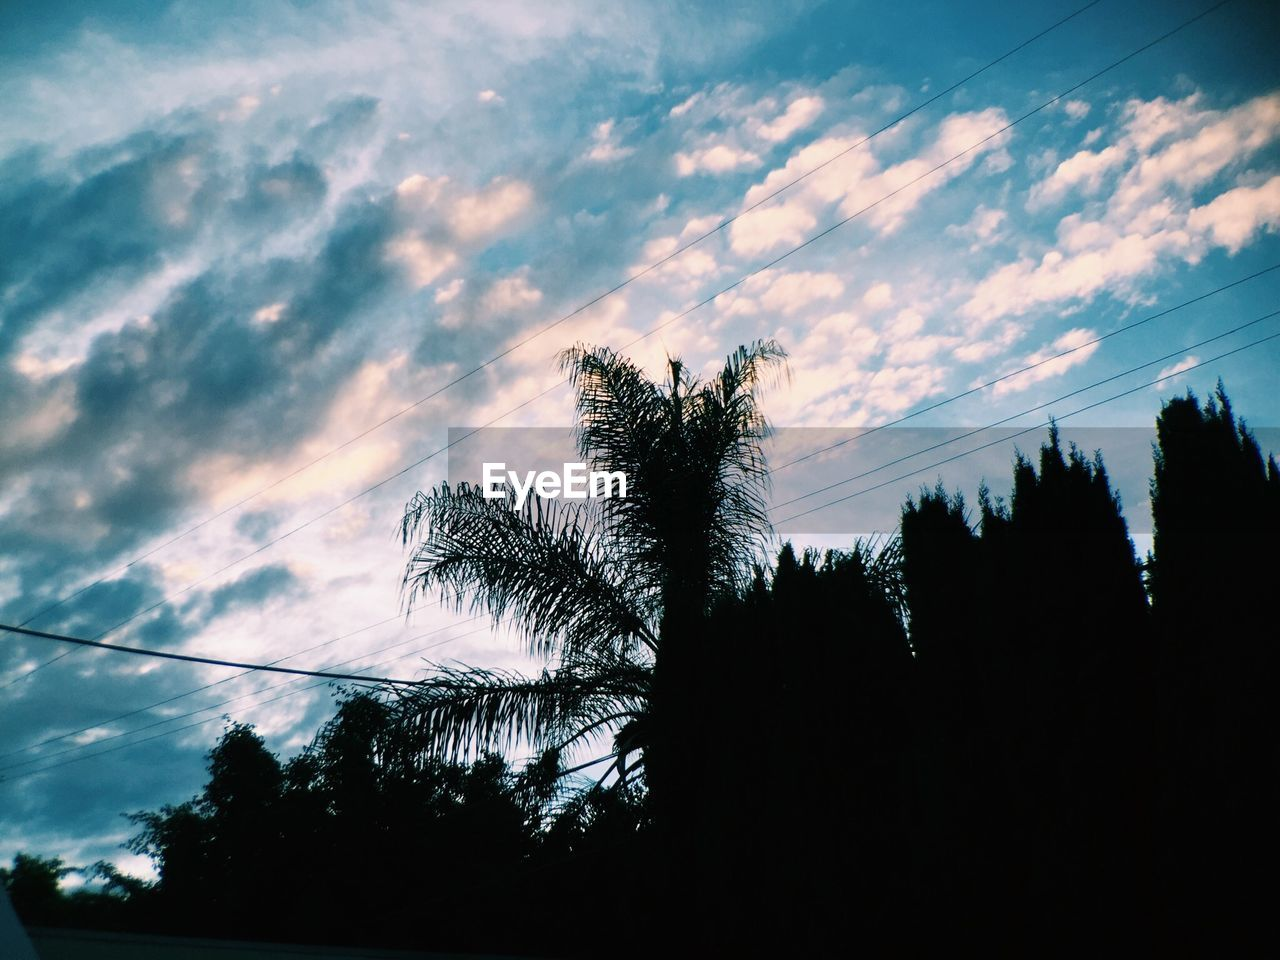 tree, silhouette, low angle view, sky, nature, growth, beauty in nature, no people, tranquility, sunset, outdoors, day